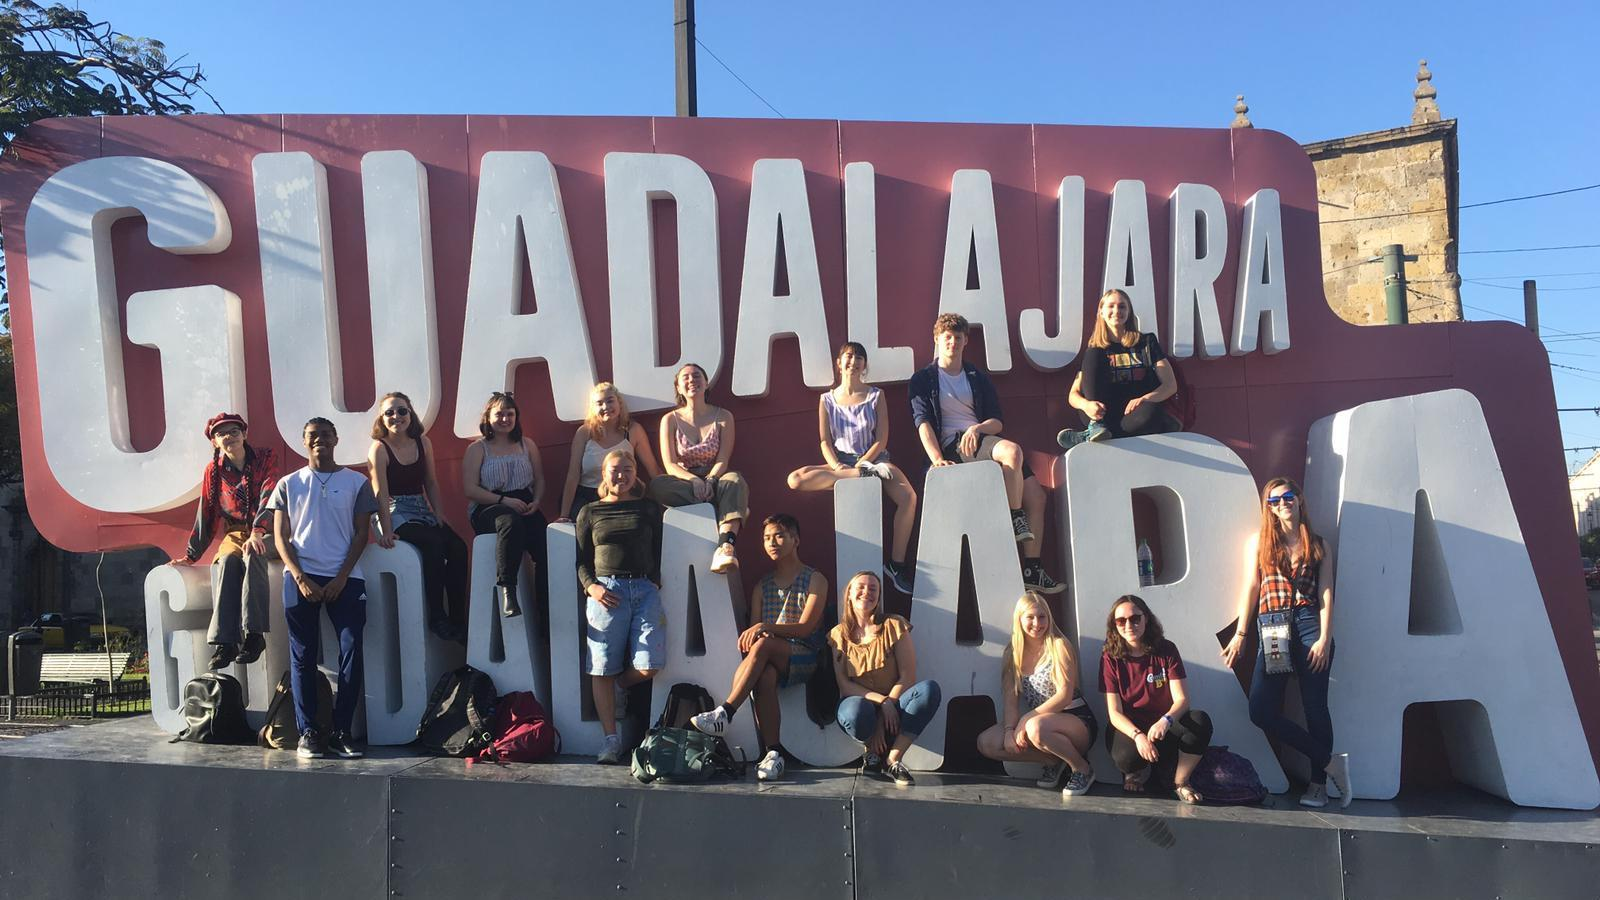 A group of students in front of a large Guadalajara sign.